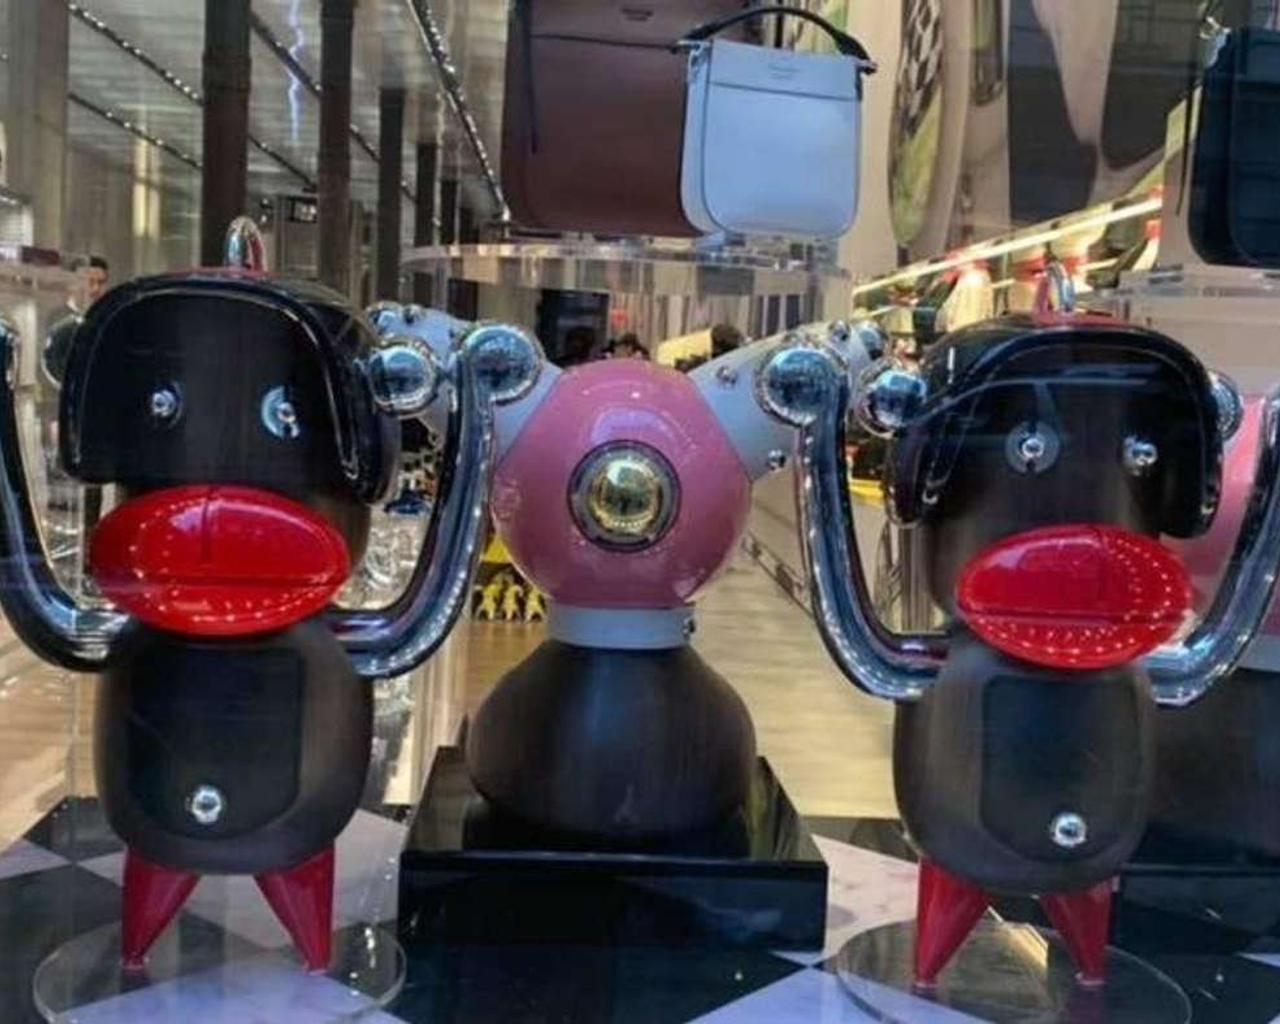 Prada Comes Under Fire For Window Display–Are The Elements Really Blackface?